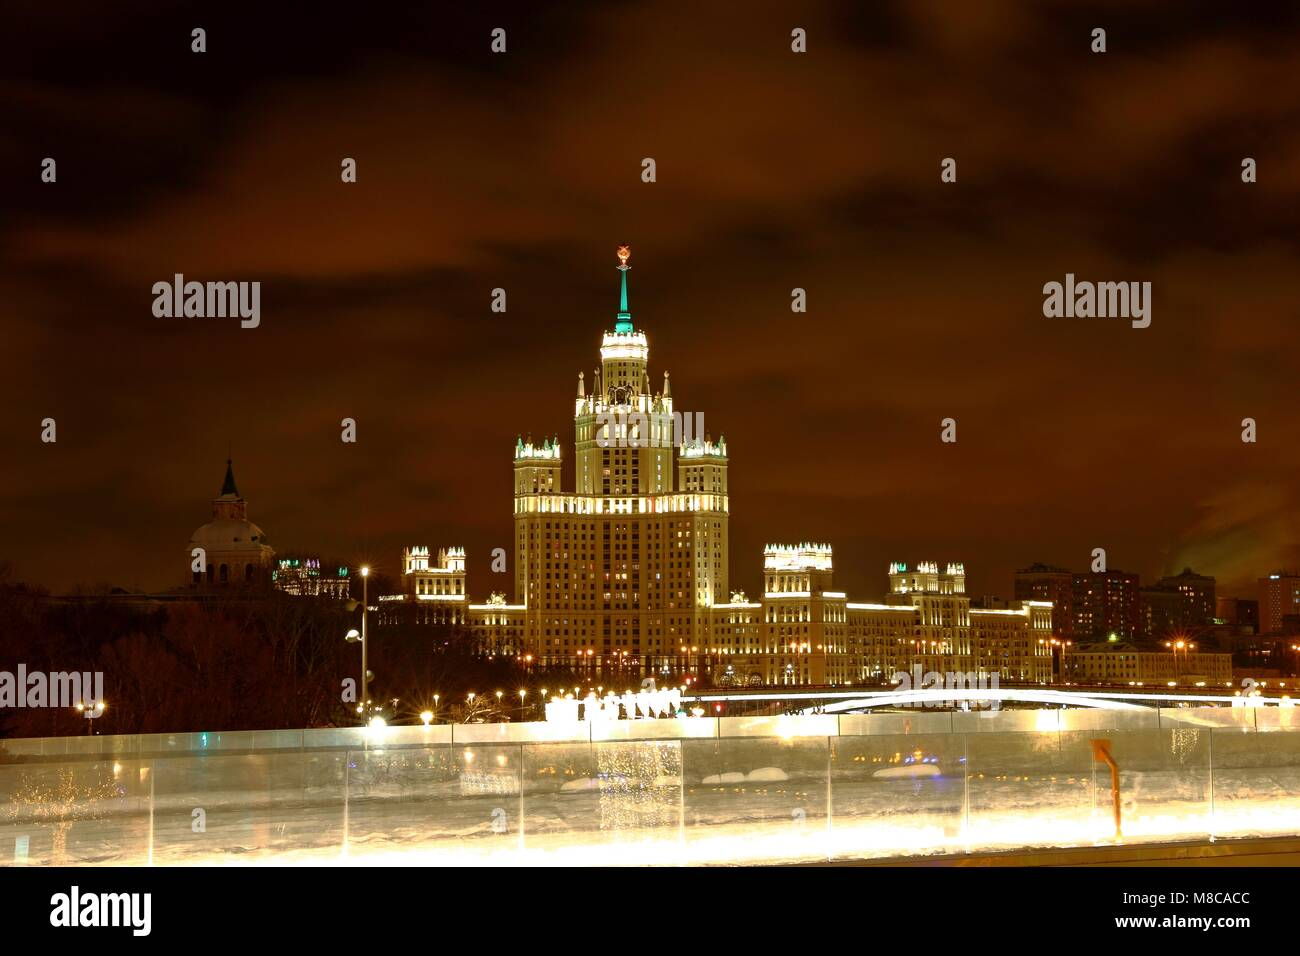 Kotelnicheskaya Embankment Building One of the Moscow Seven Sisters at night Stock Photo